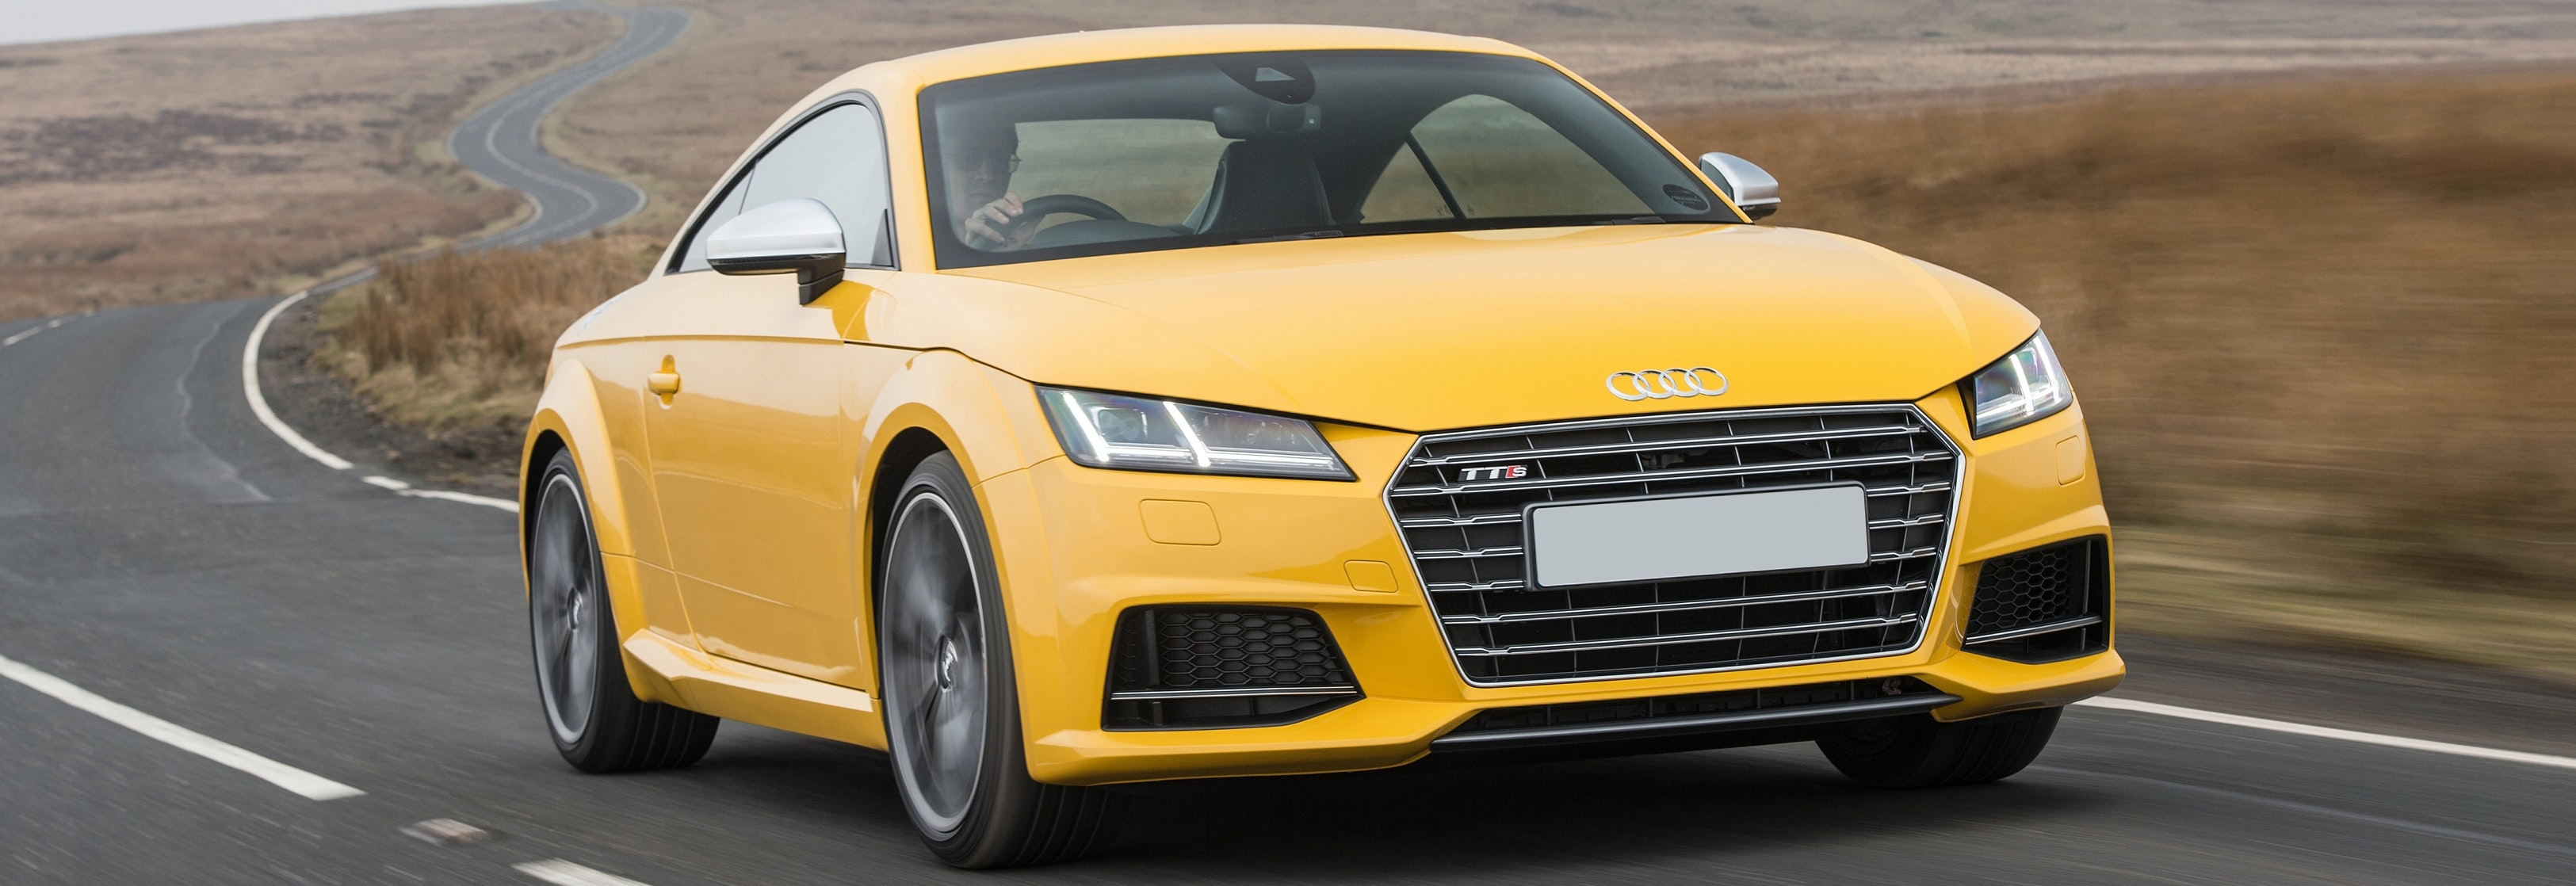 2018 Audi Tts Yellow Driving Front